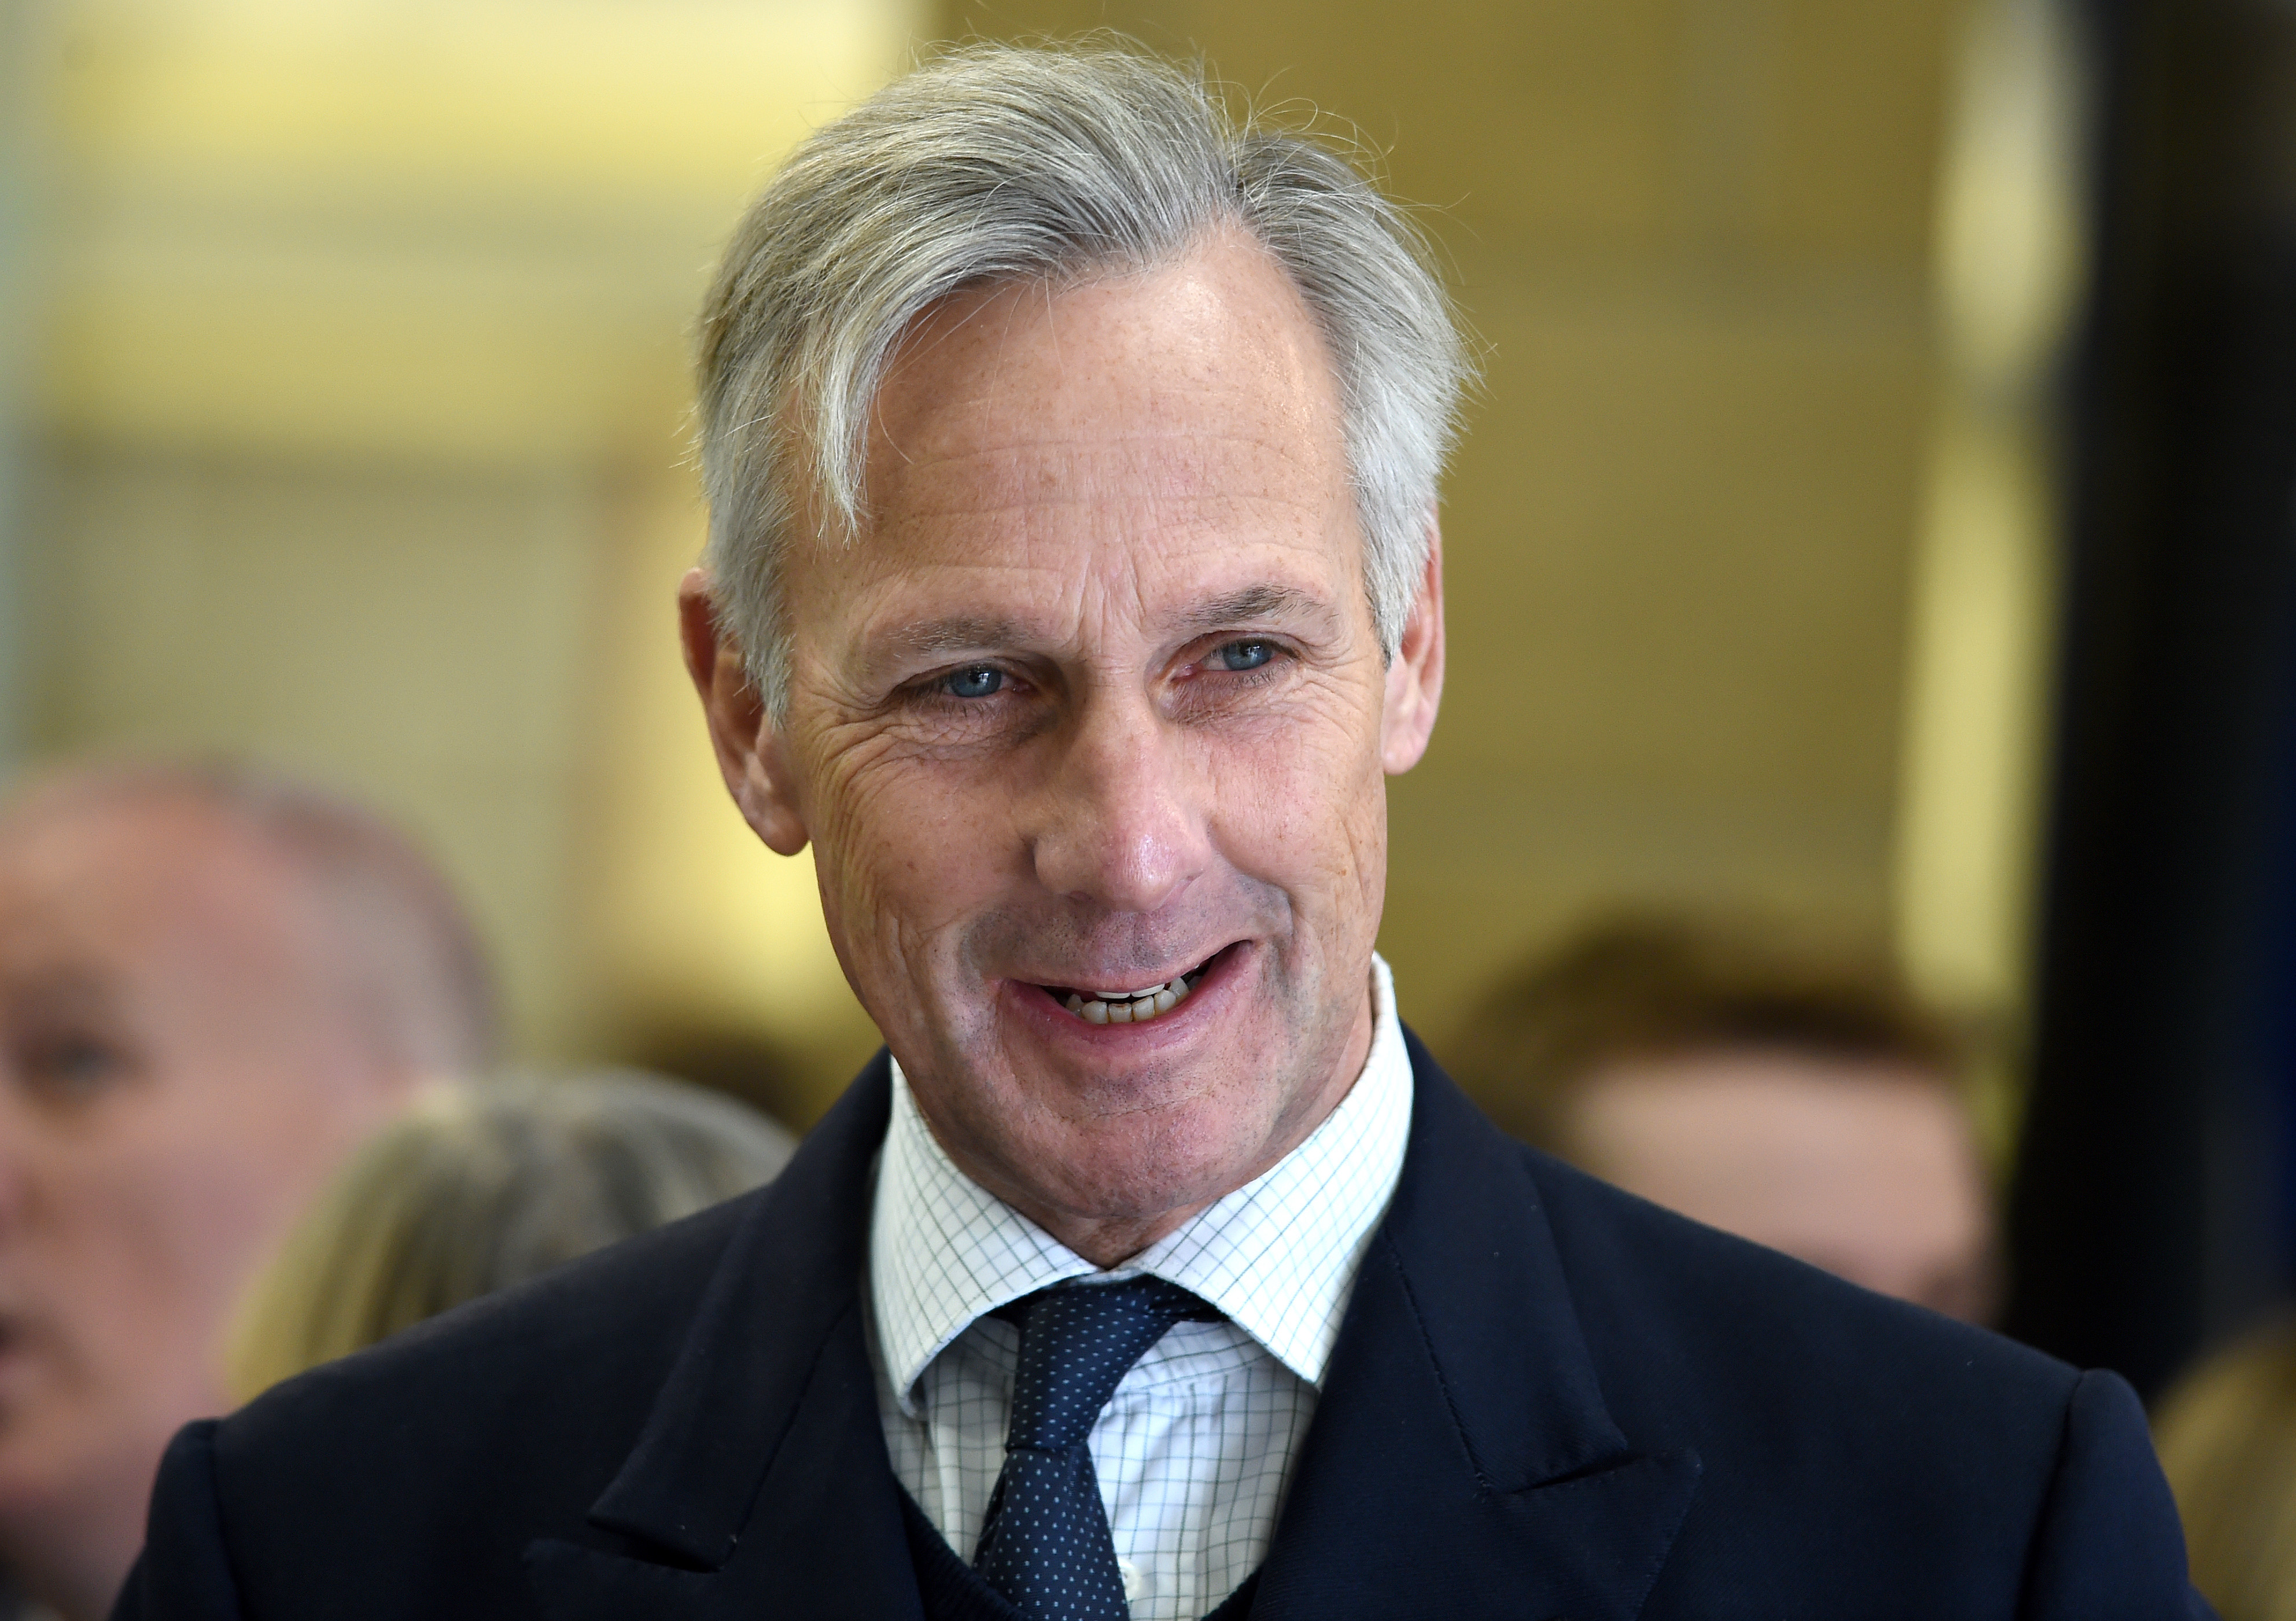 Richard Drax is seeking re-election as the Conservative MP for South Dorset. (Getty)